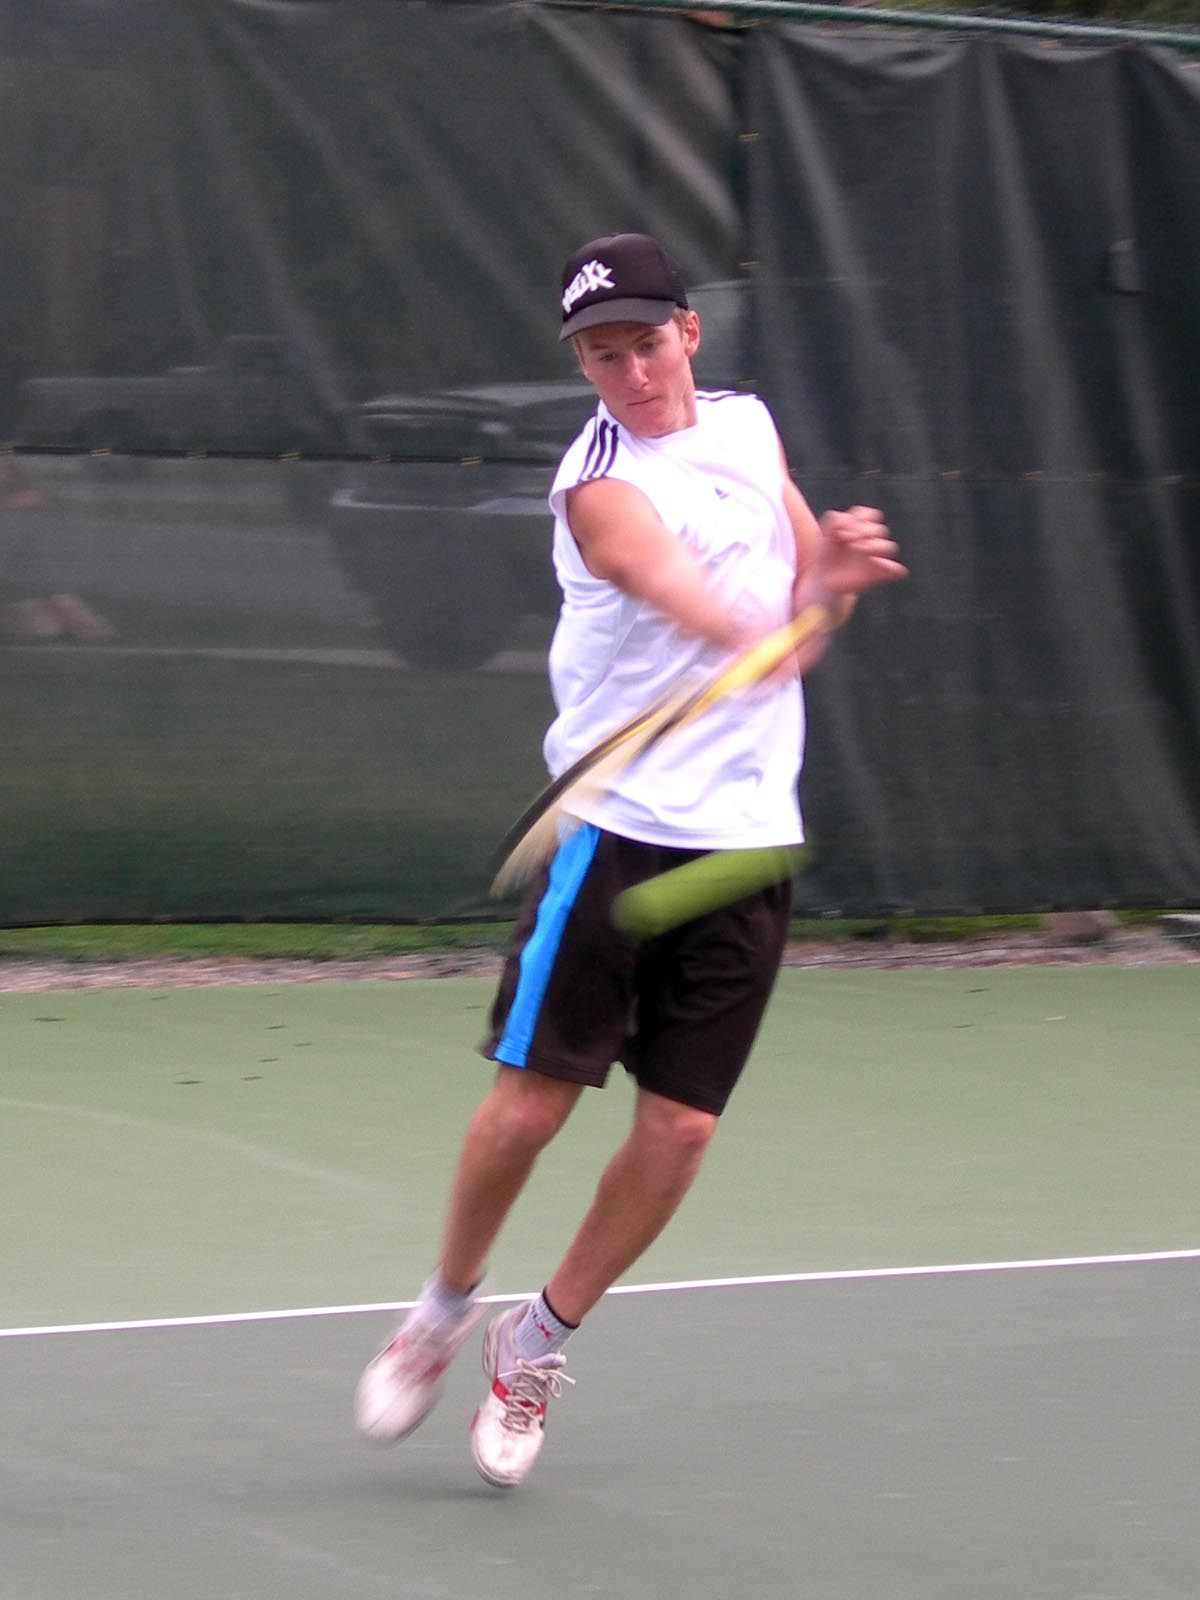 TED LIGETY TENNIS